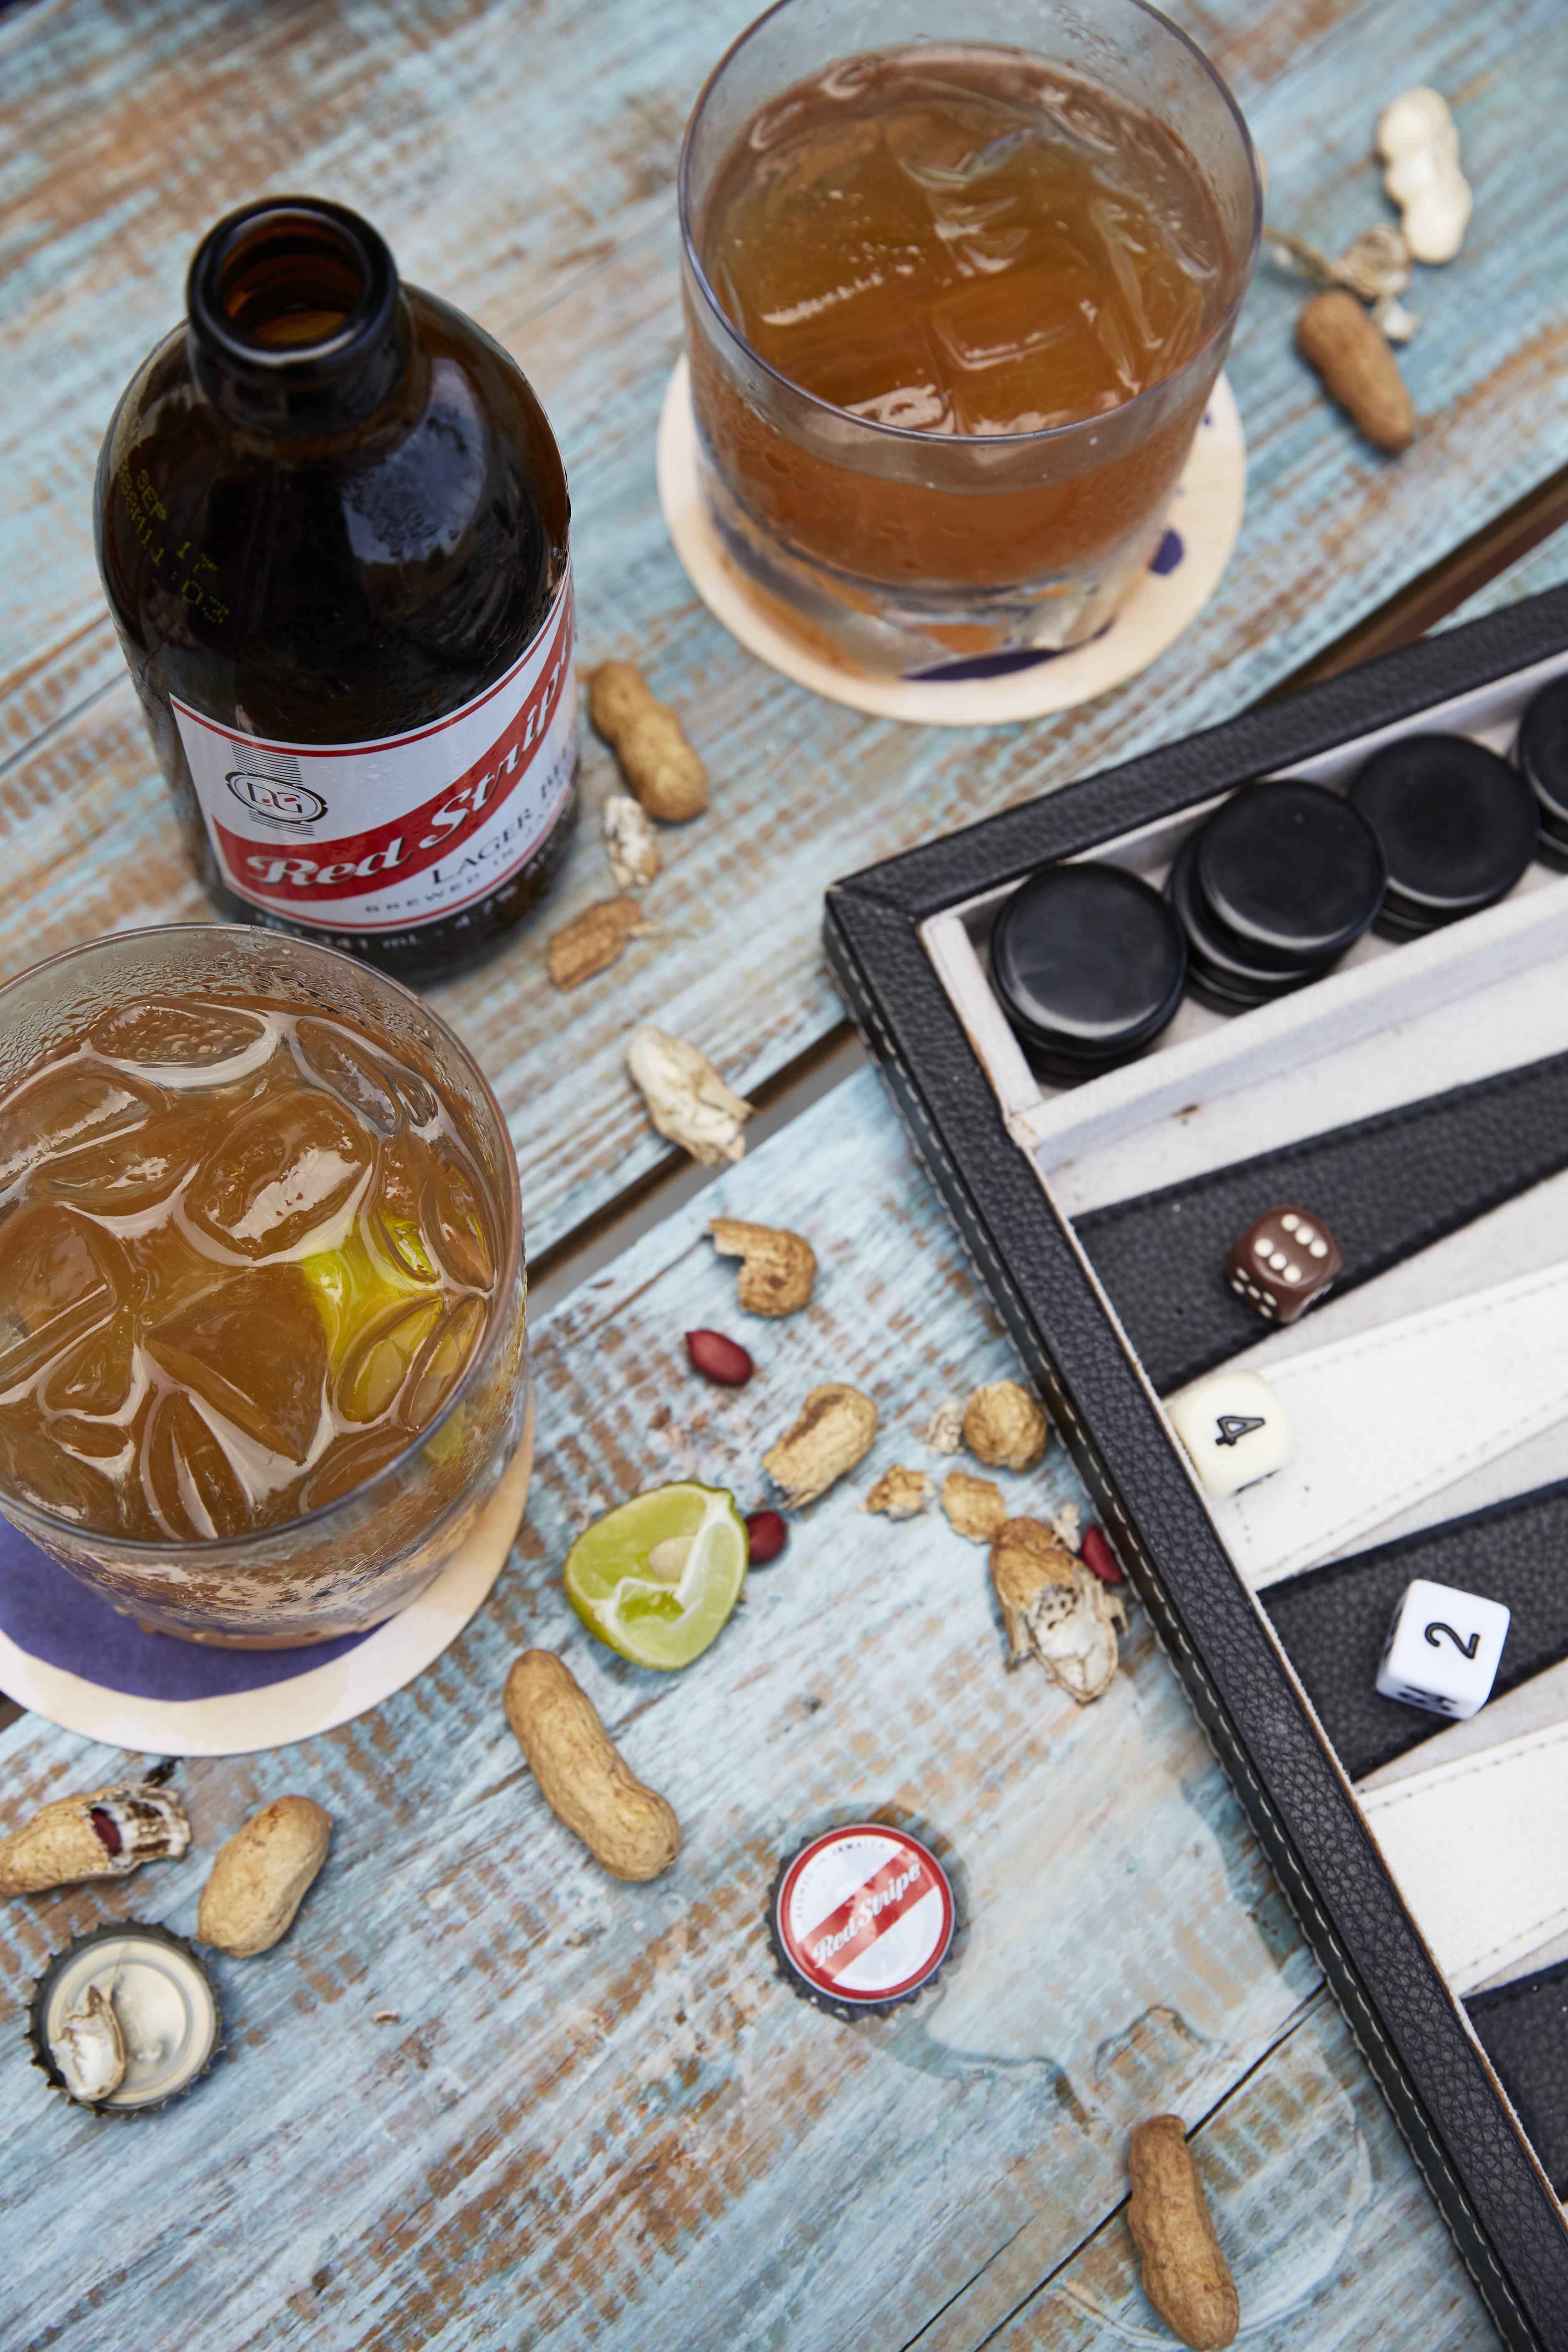 Any stay at Goldeneye should include backgammon and a Red Stripe or rum punch.